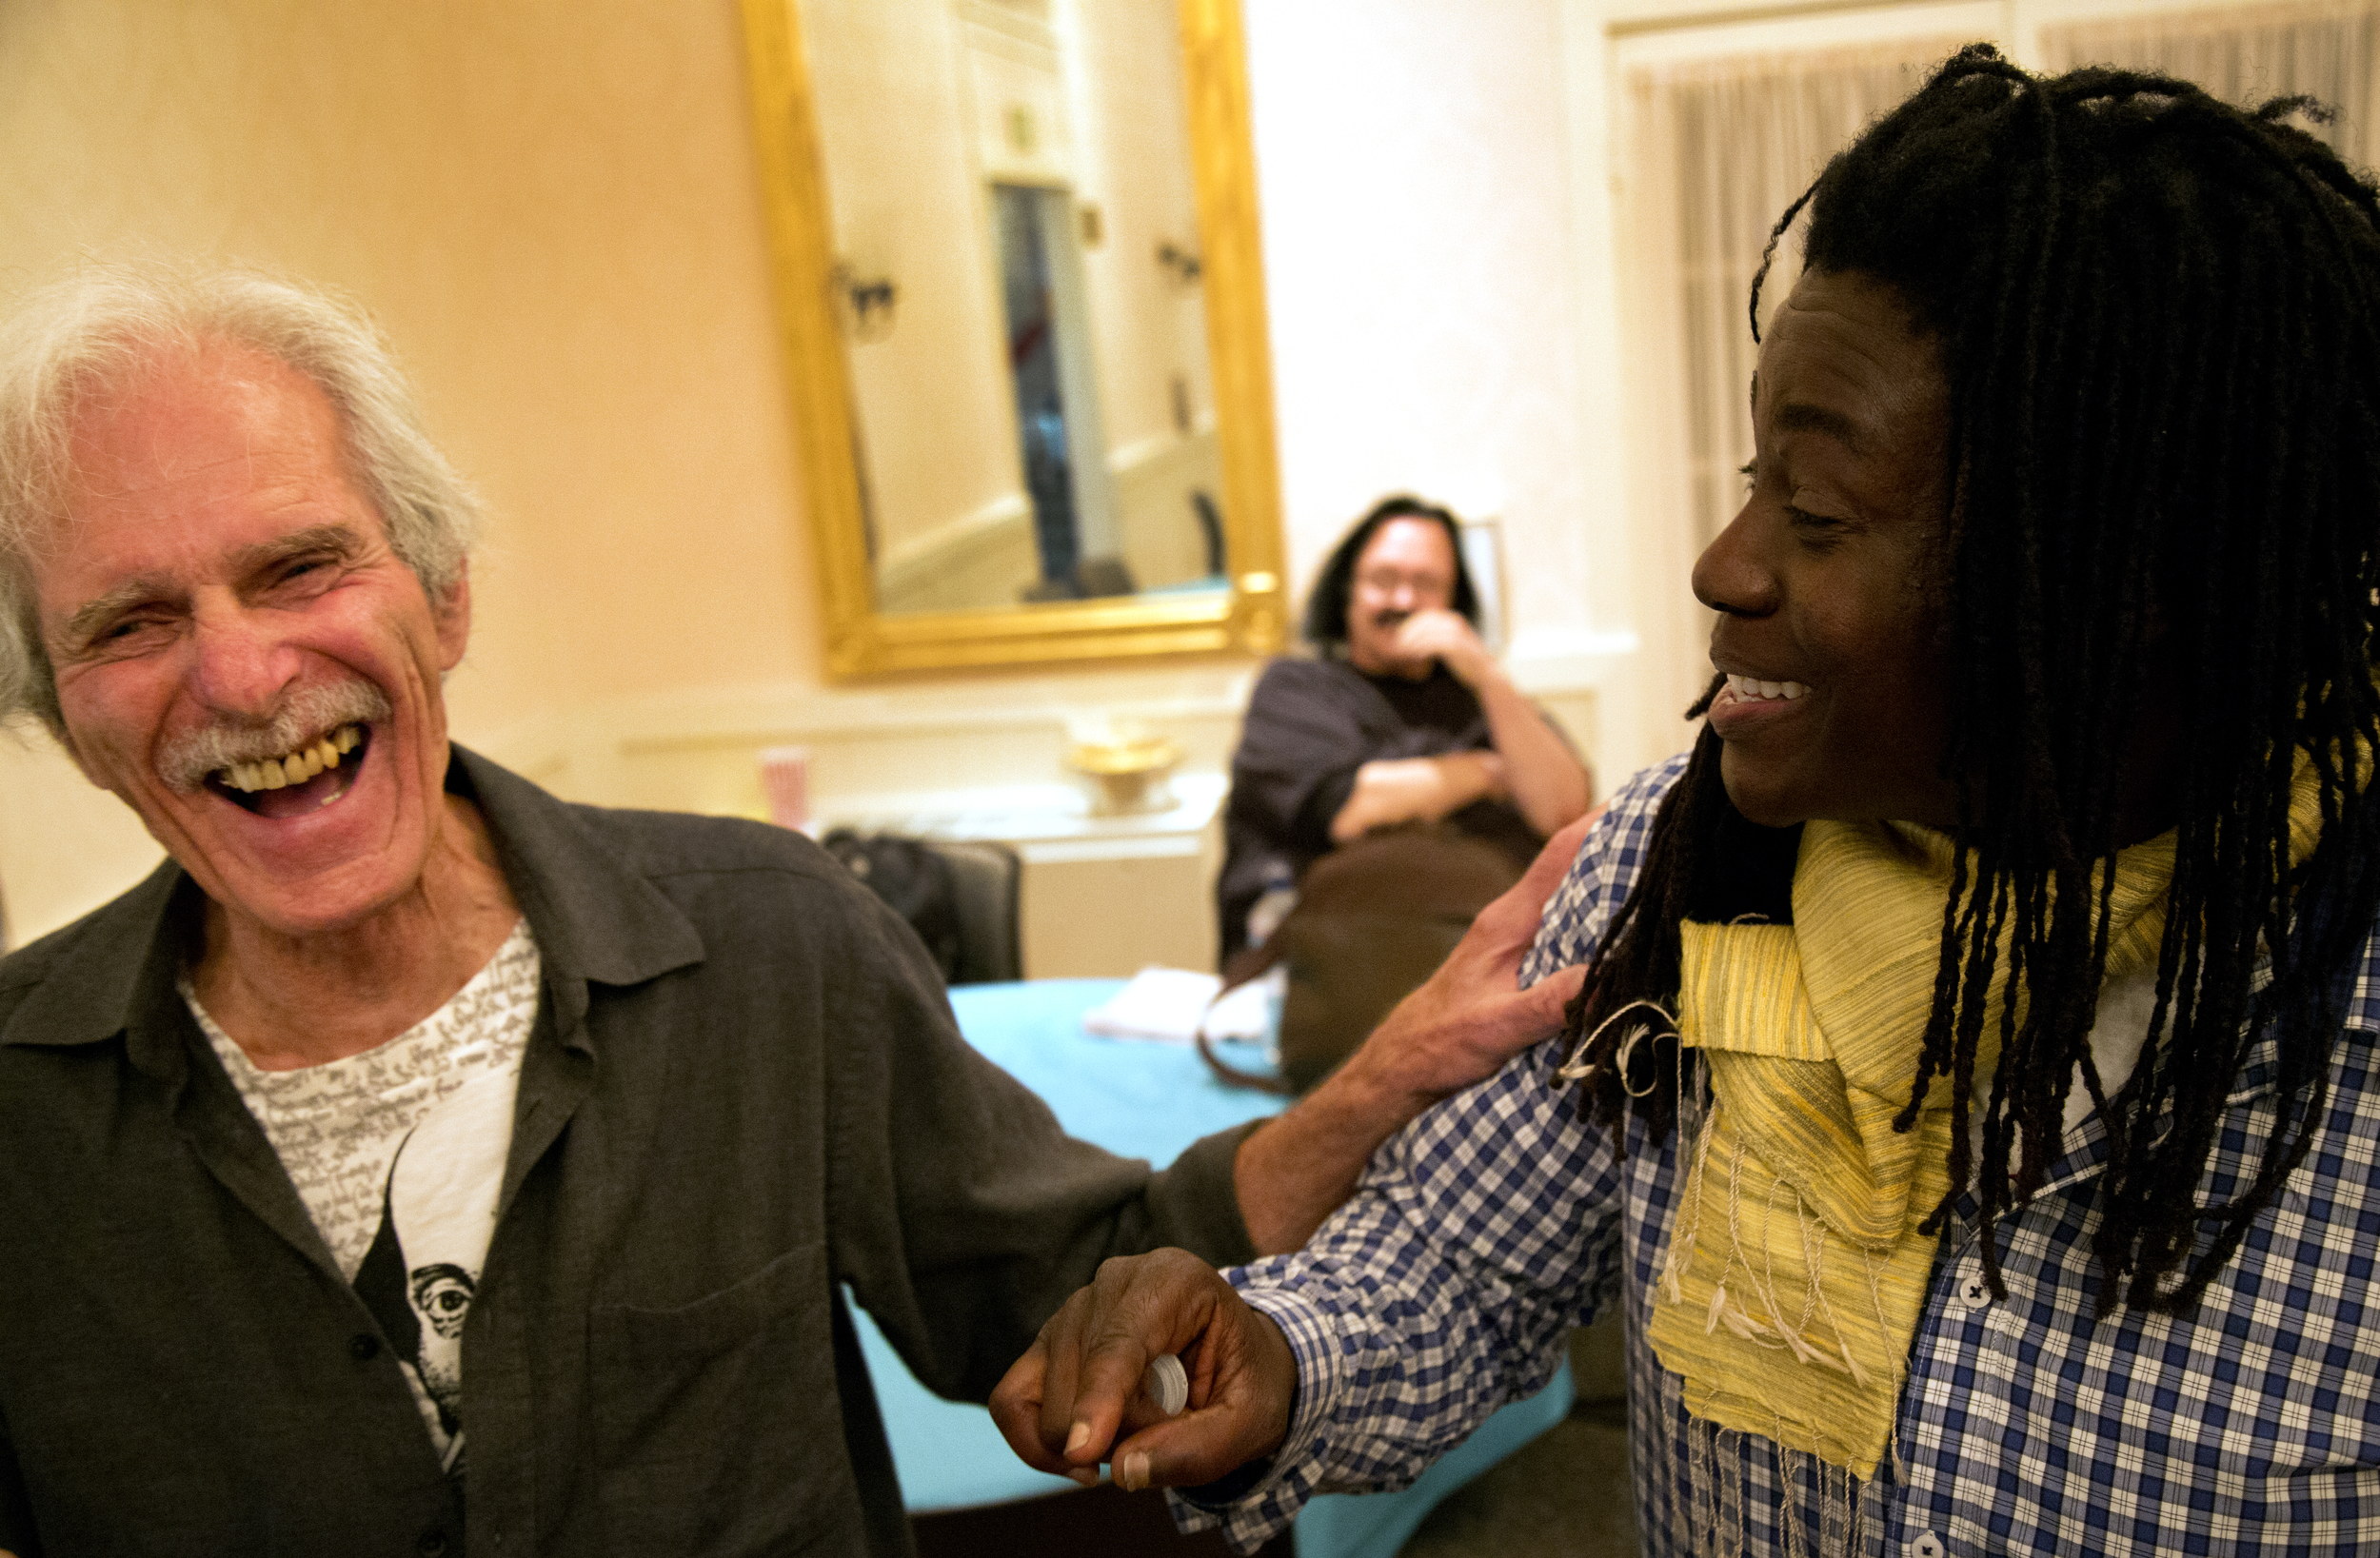 Skyler Cooper and Gene Gordon share a moment of joy before a small Othello production presented by The Rossmoor Shakespeare Society in the Dollar Club House in Rossmoor, Calif. Thursday April 9, 2015.